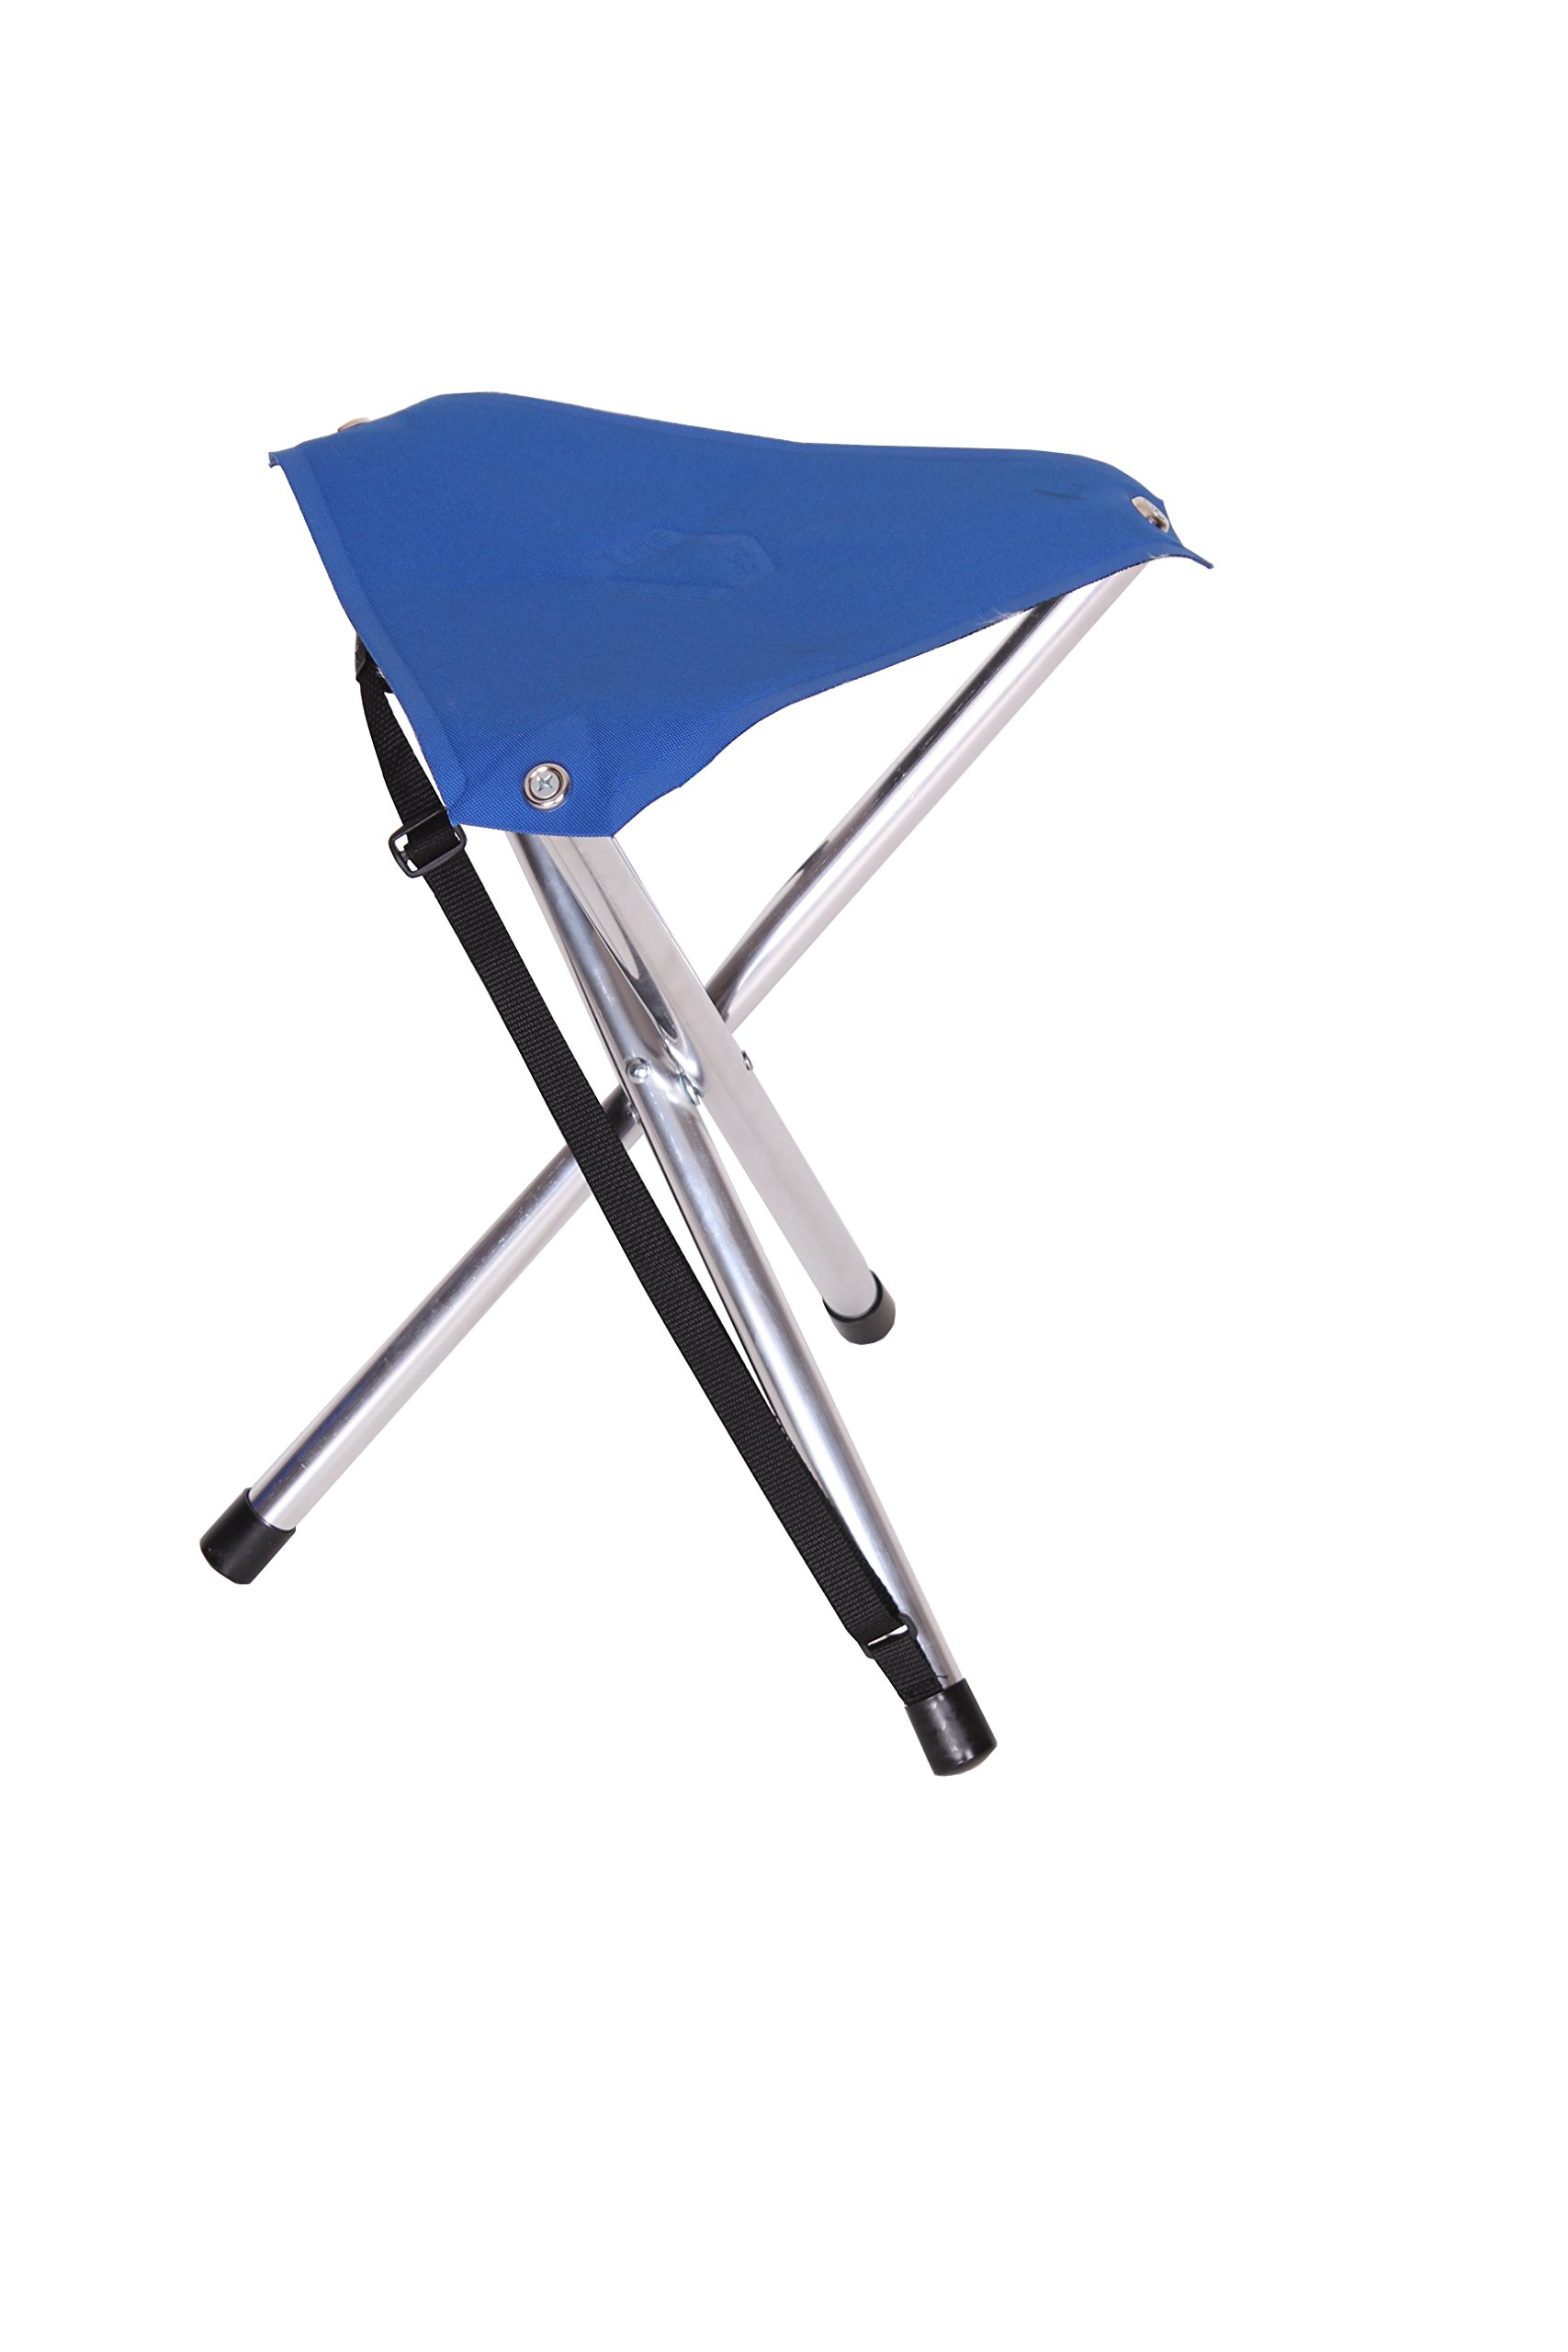 Camp Time Roll-a-Stool by Camp Time